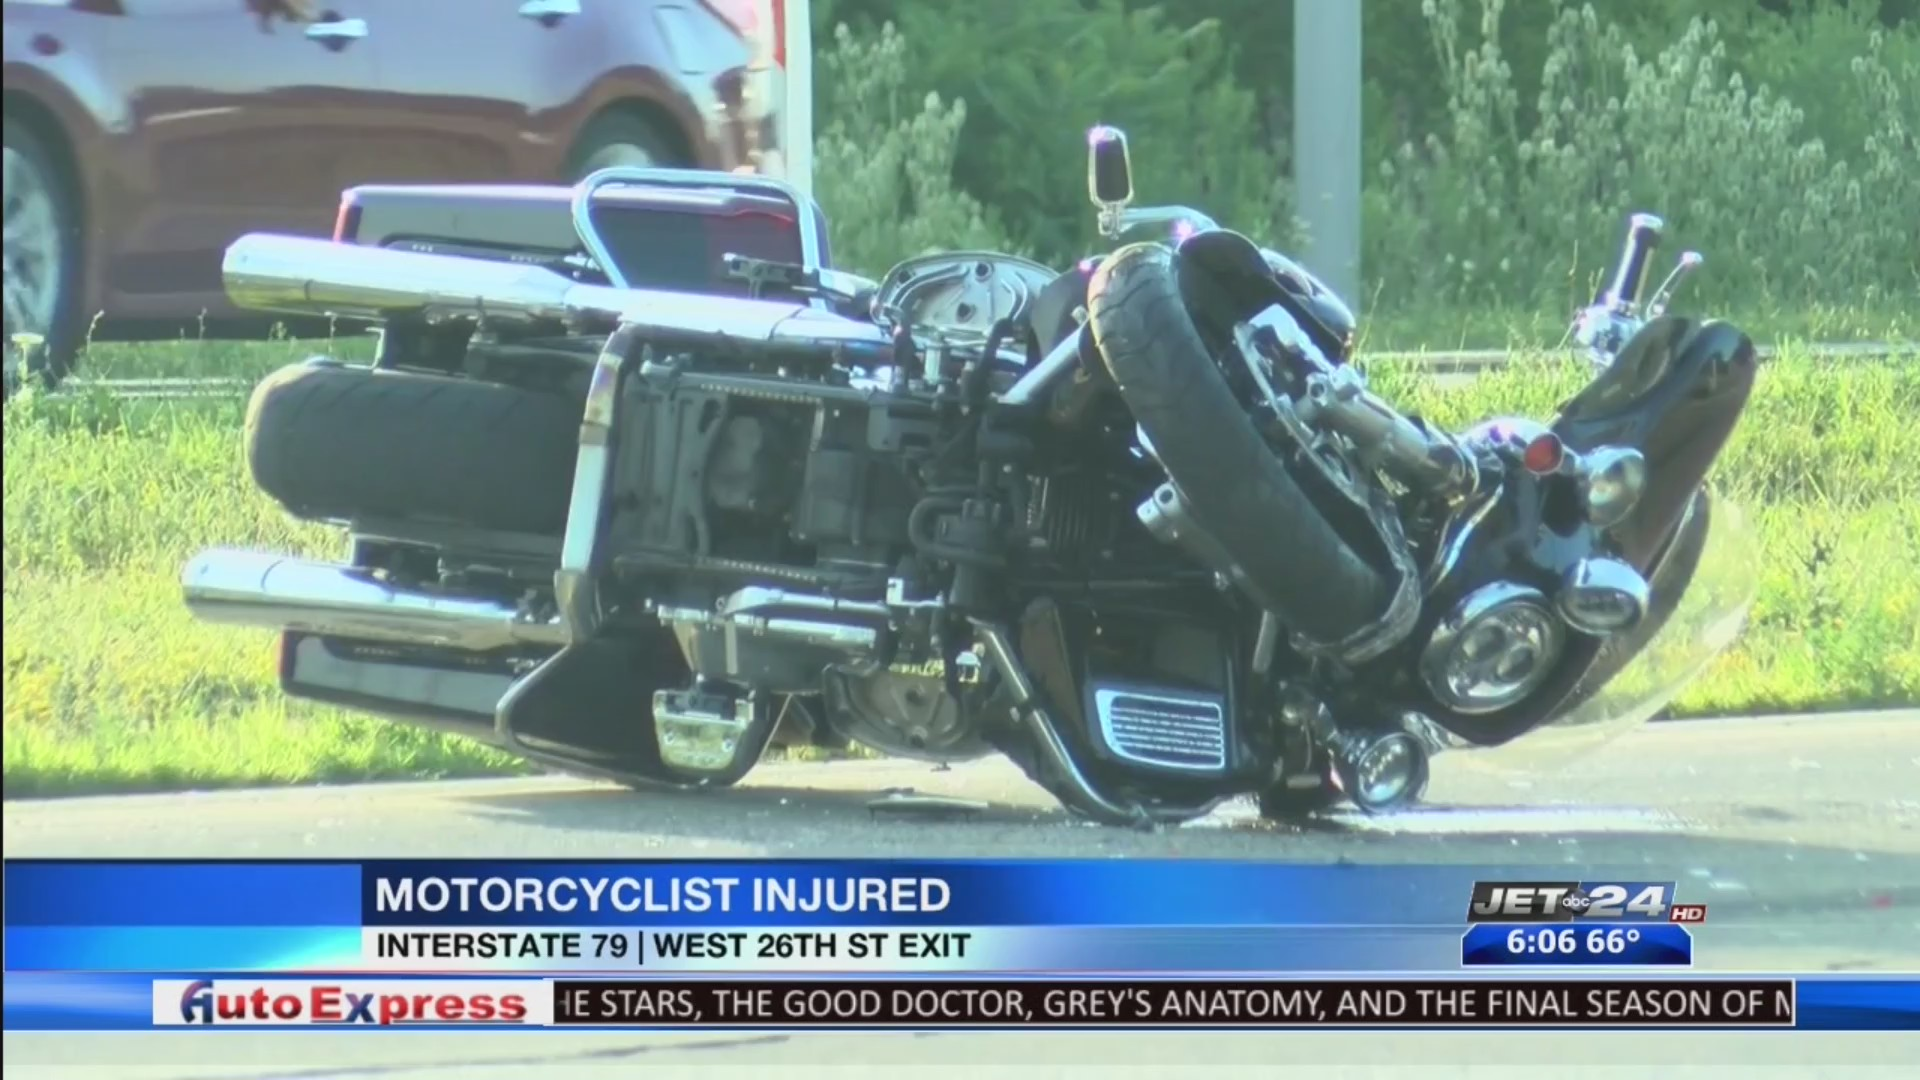 Motorcyclist sent to hospital after accident on I-79 | WJET